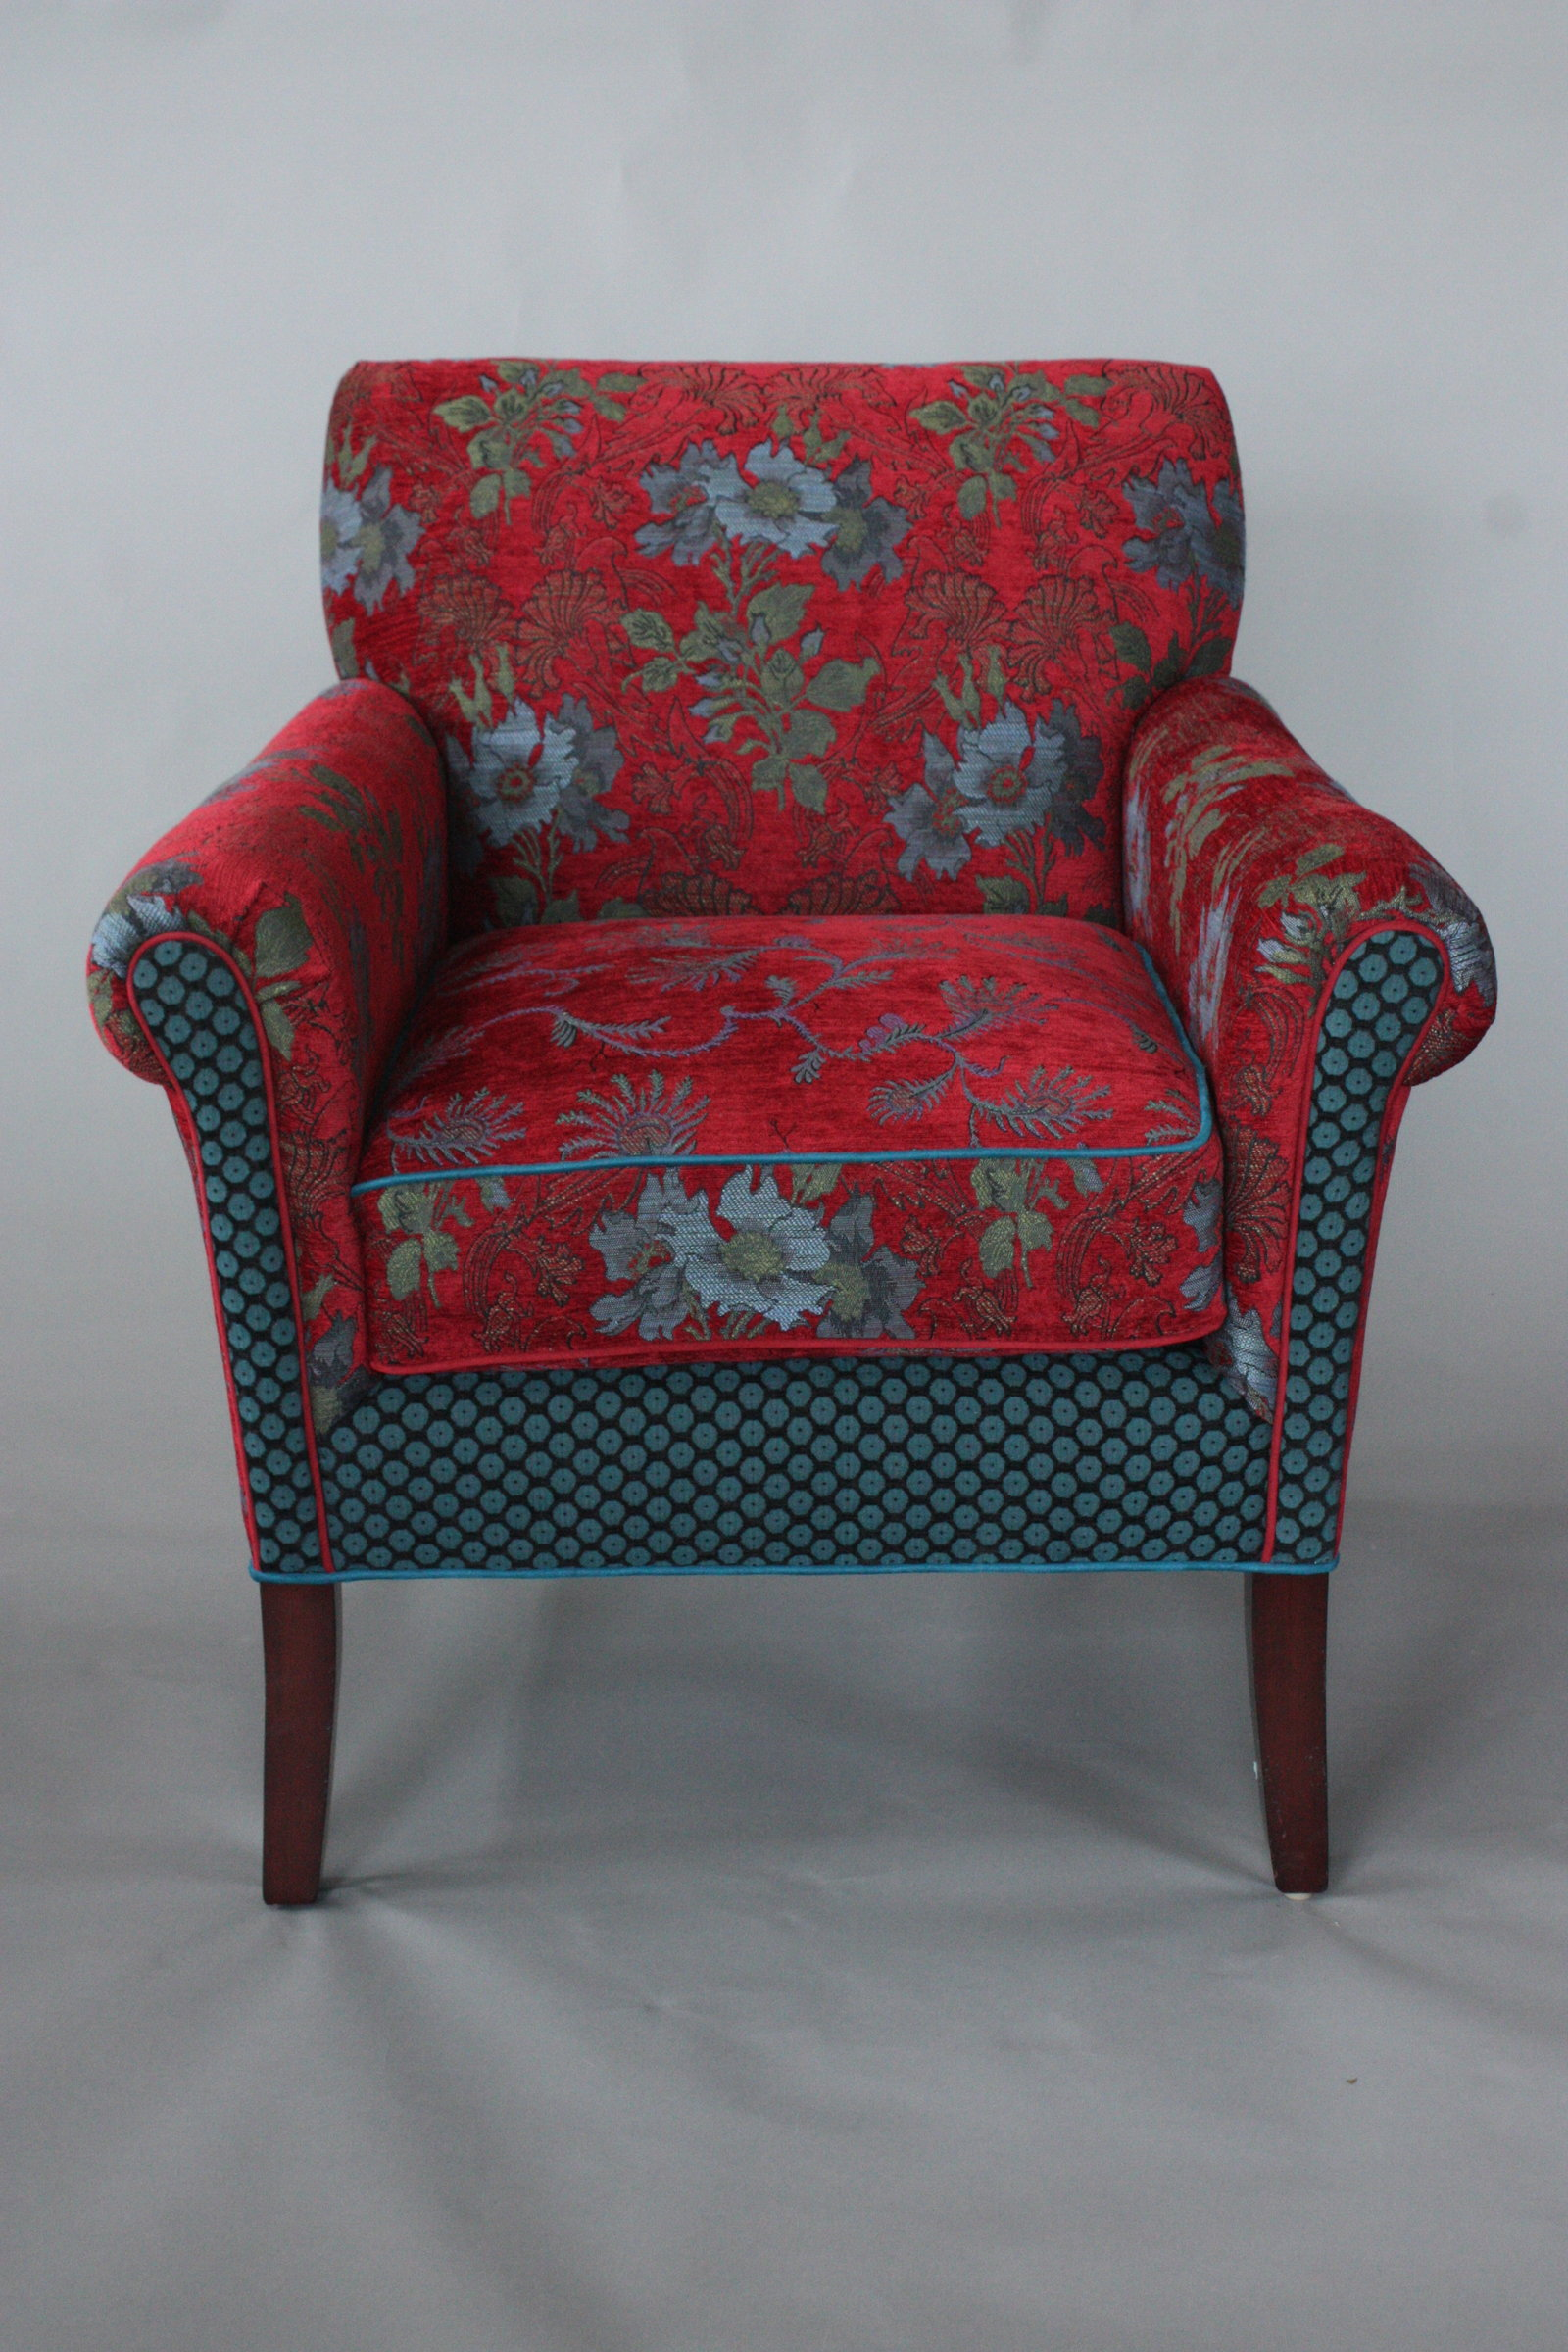 Red Salon Chairs Salon Chair In Red Wine By Mary Lynn O 39shea Upholstered